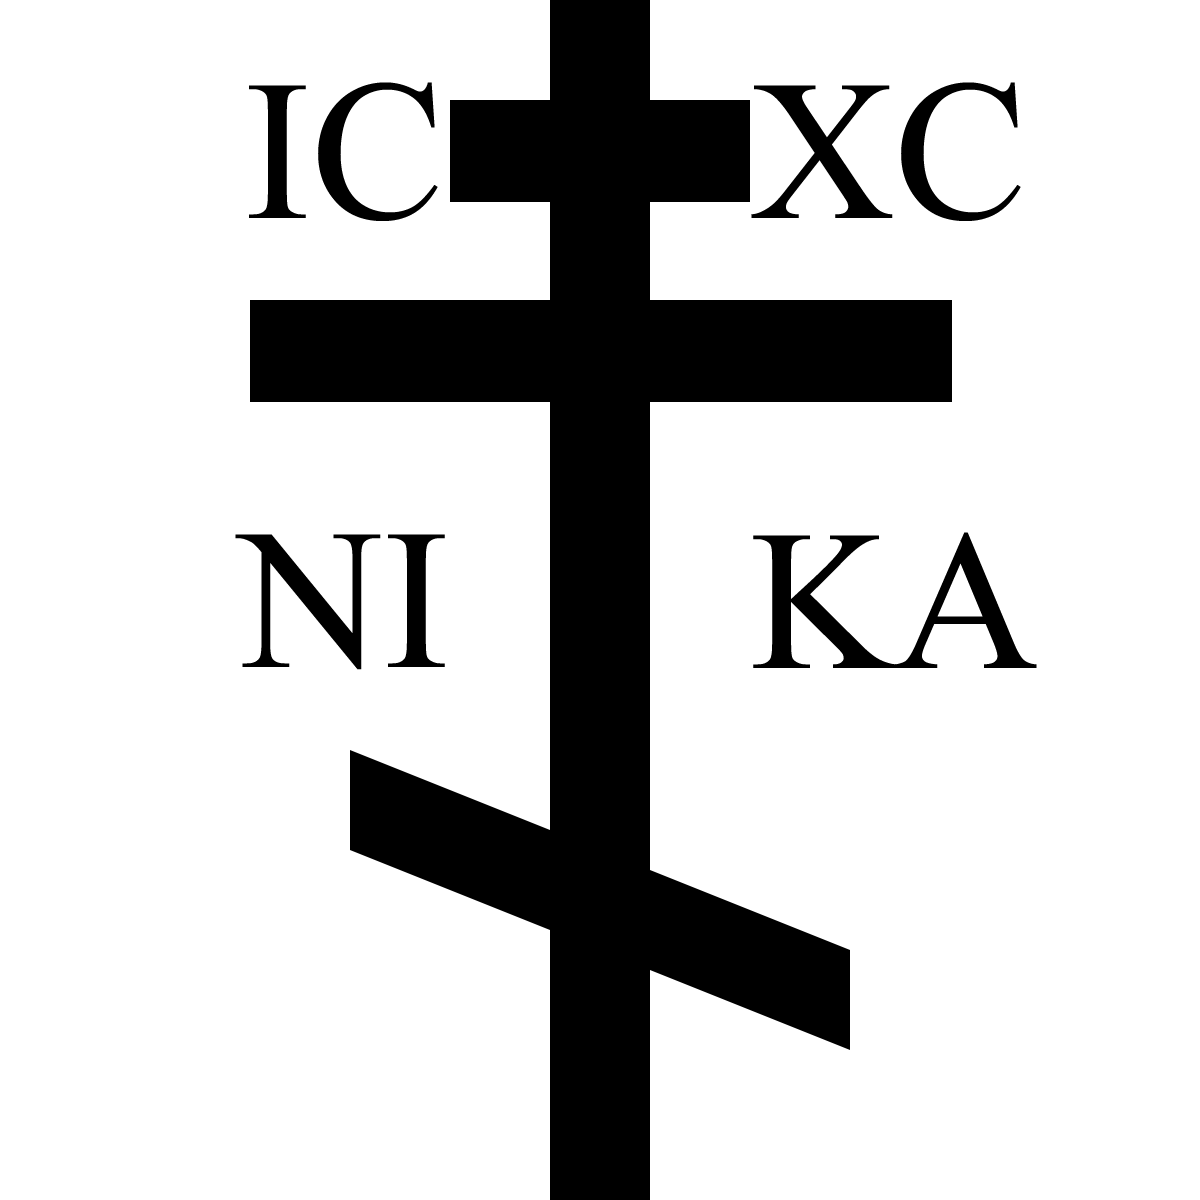 orthodox cross1